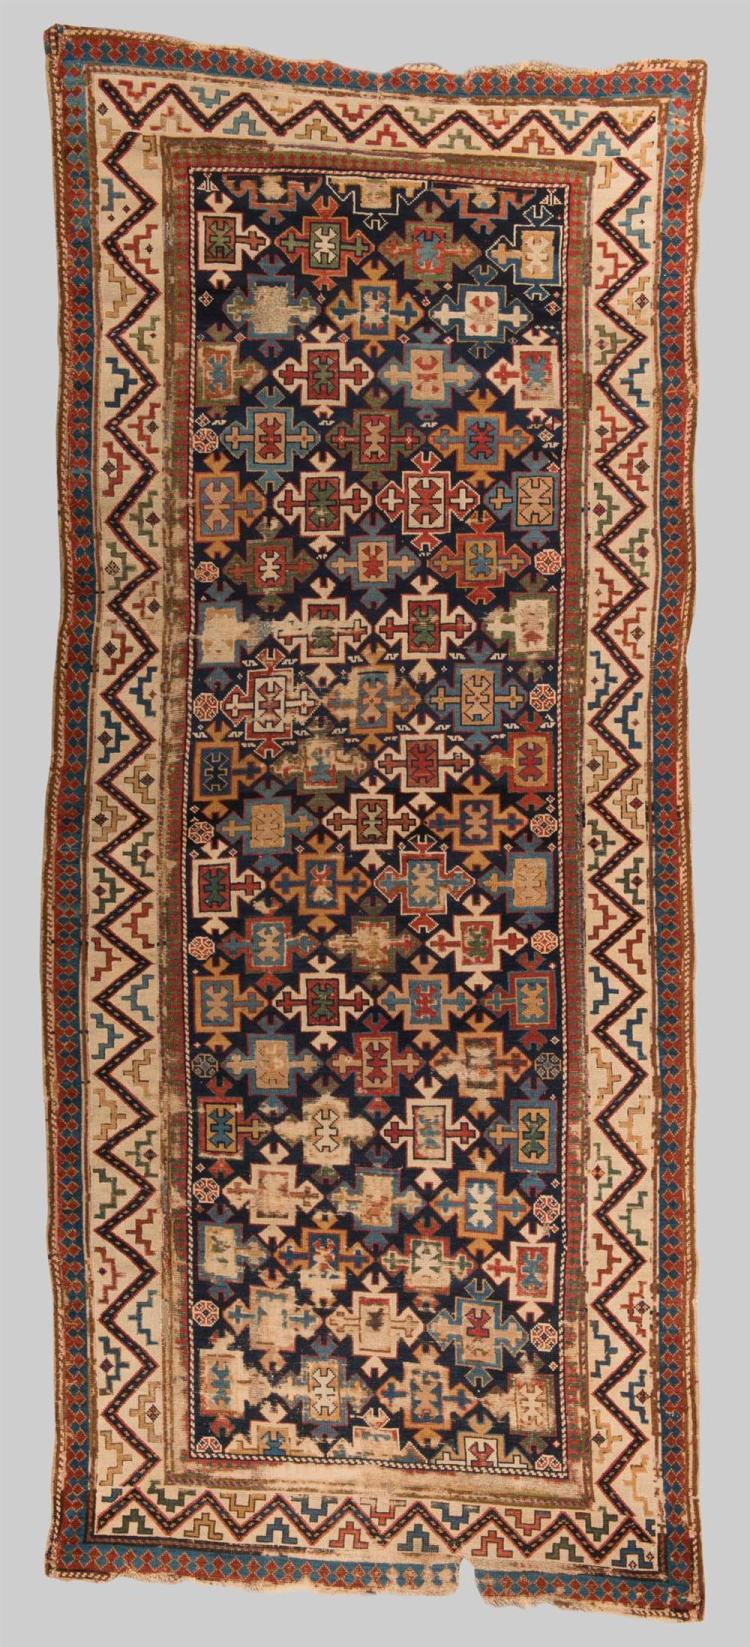 CAUCASIAN RUG, first half 19th century; 9 ft. 10 in. x 4 ft. 1 in.